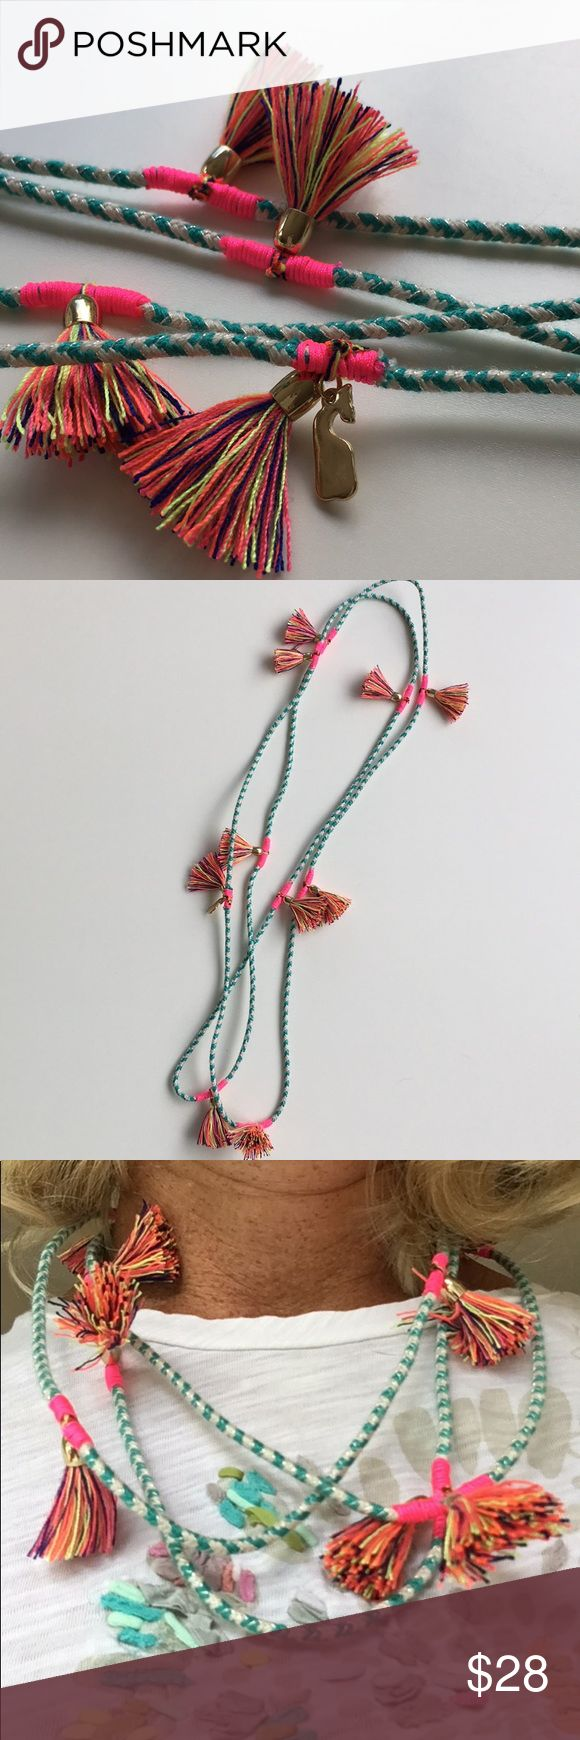 Vineyard Vines Tassel Necklace So fun and versatile. Can be worn long or short, layered with other necklaces, and also wrapped as a bracelet. Purchased in Nantucket, and haven't seen it at any other store location, or on website. Bright pink and turquoise with gold accents. Worn once. Vineyard Vines Jewelry Necklaces